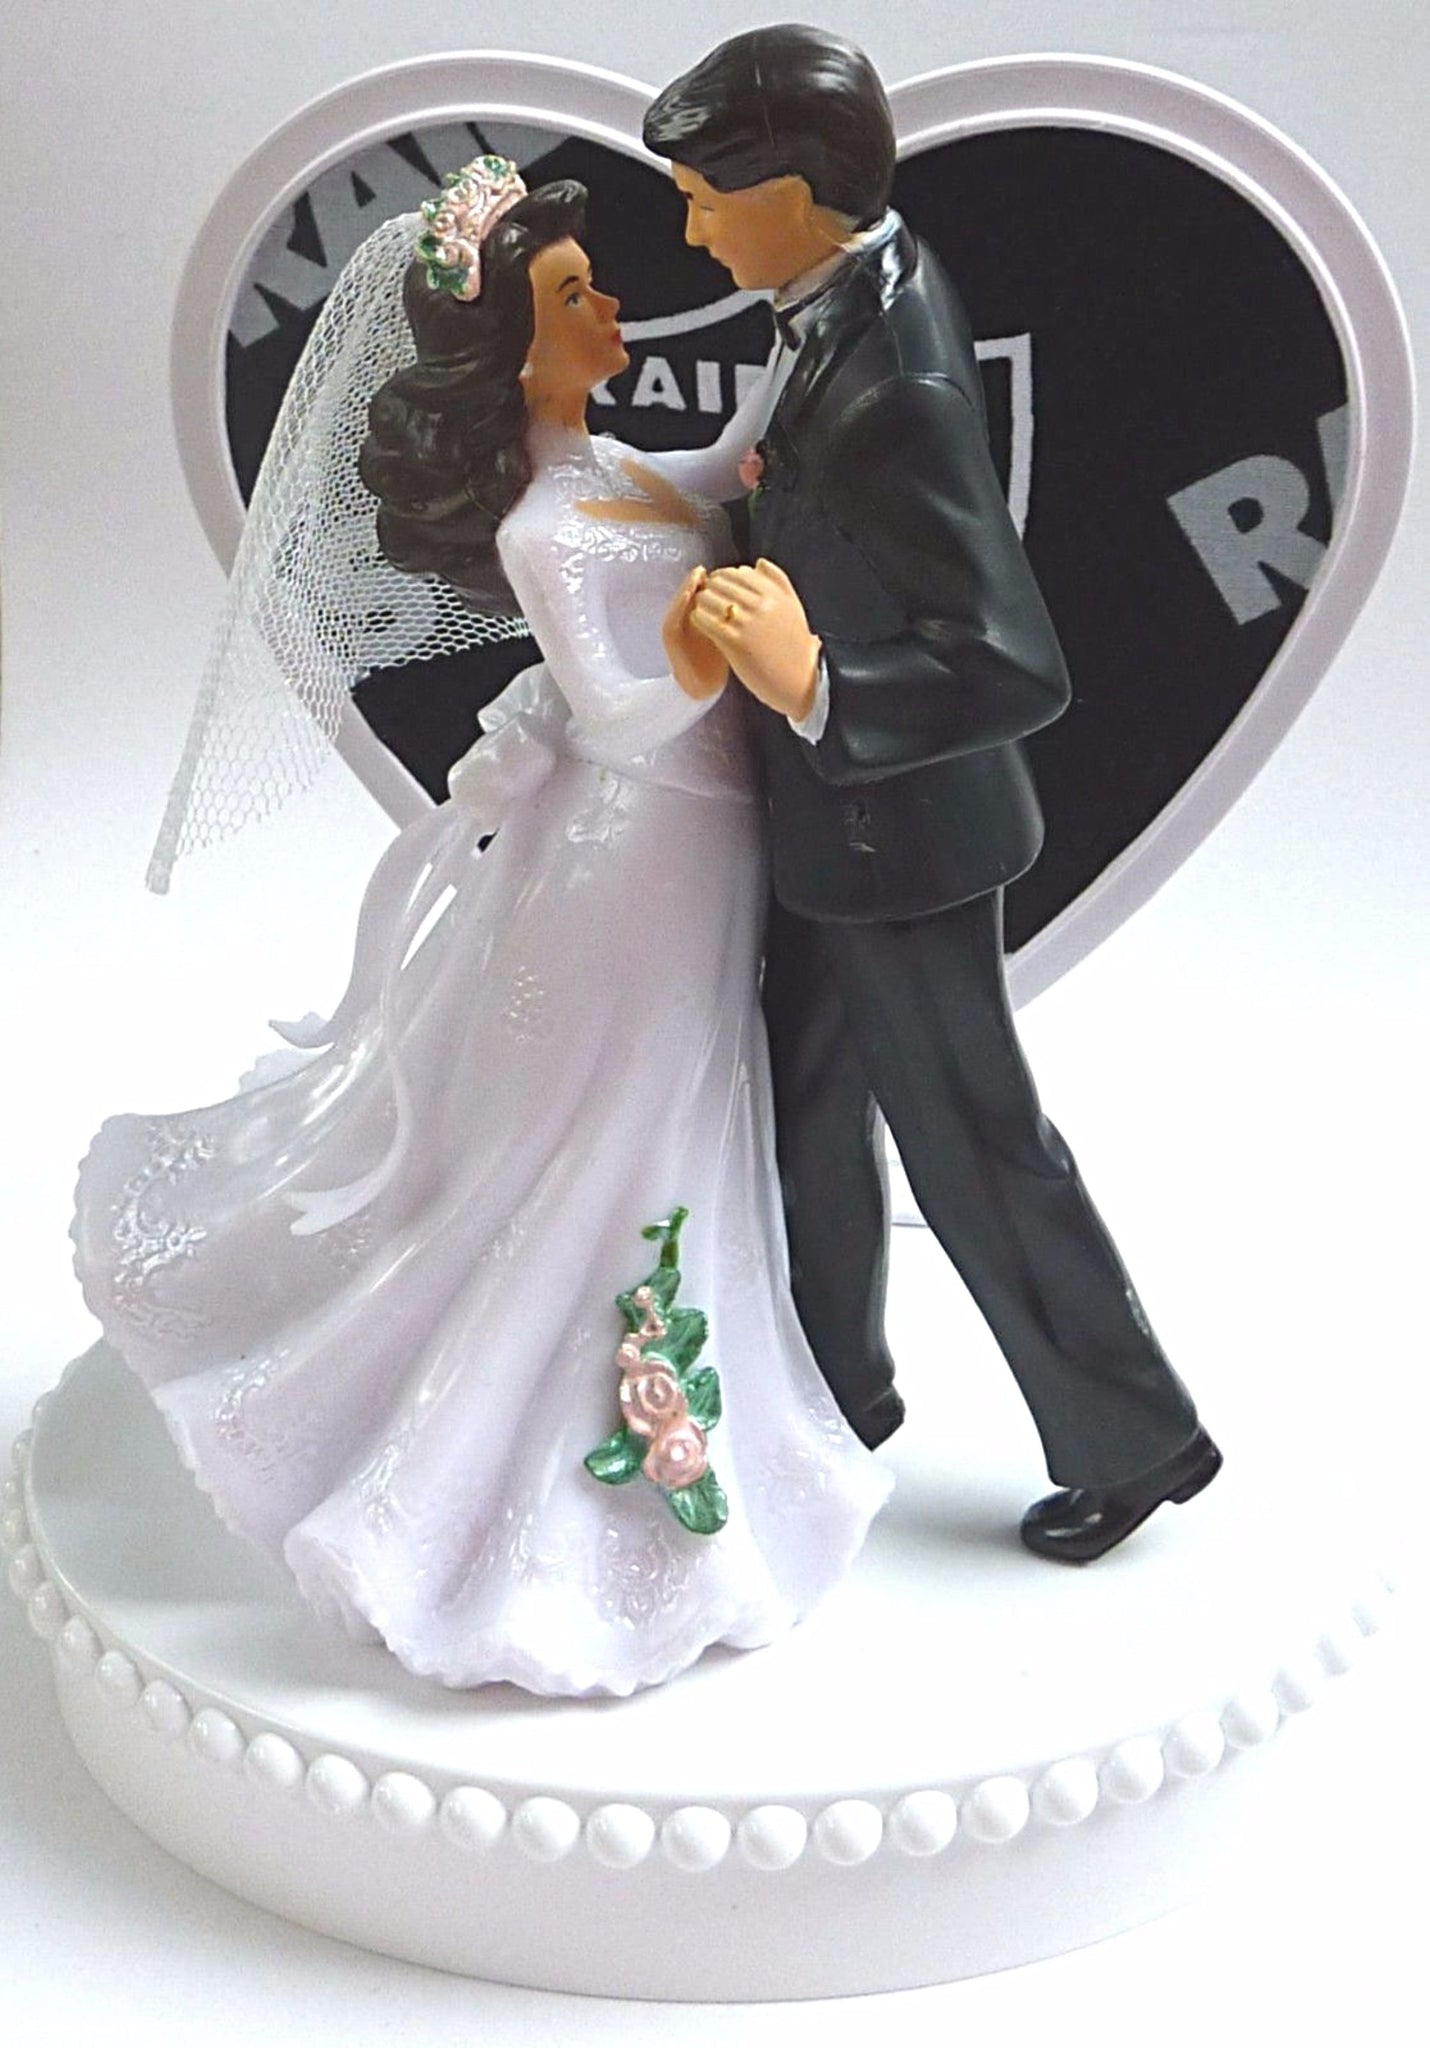 Wedding Cake Topper - Oakland Raiders Football Themed Couple Dancing ...